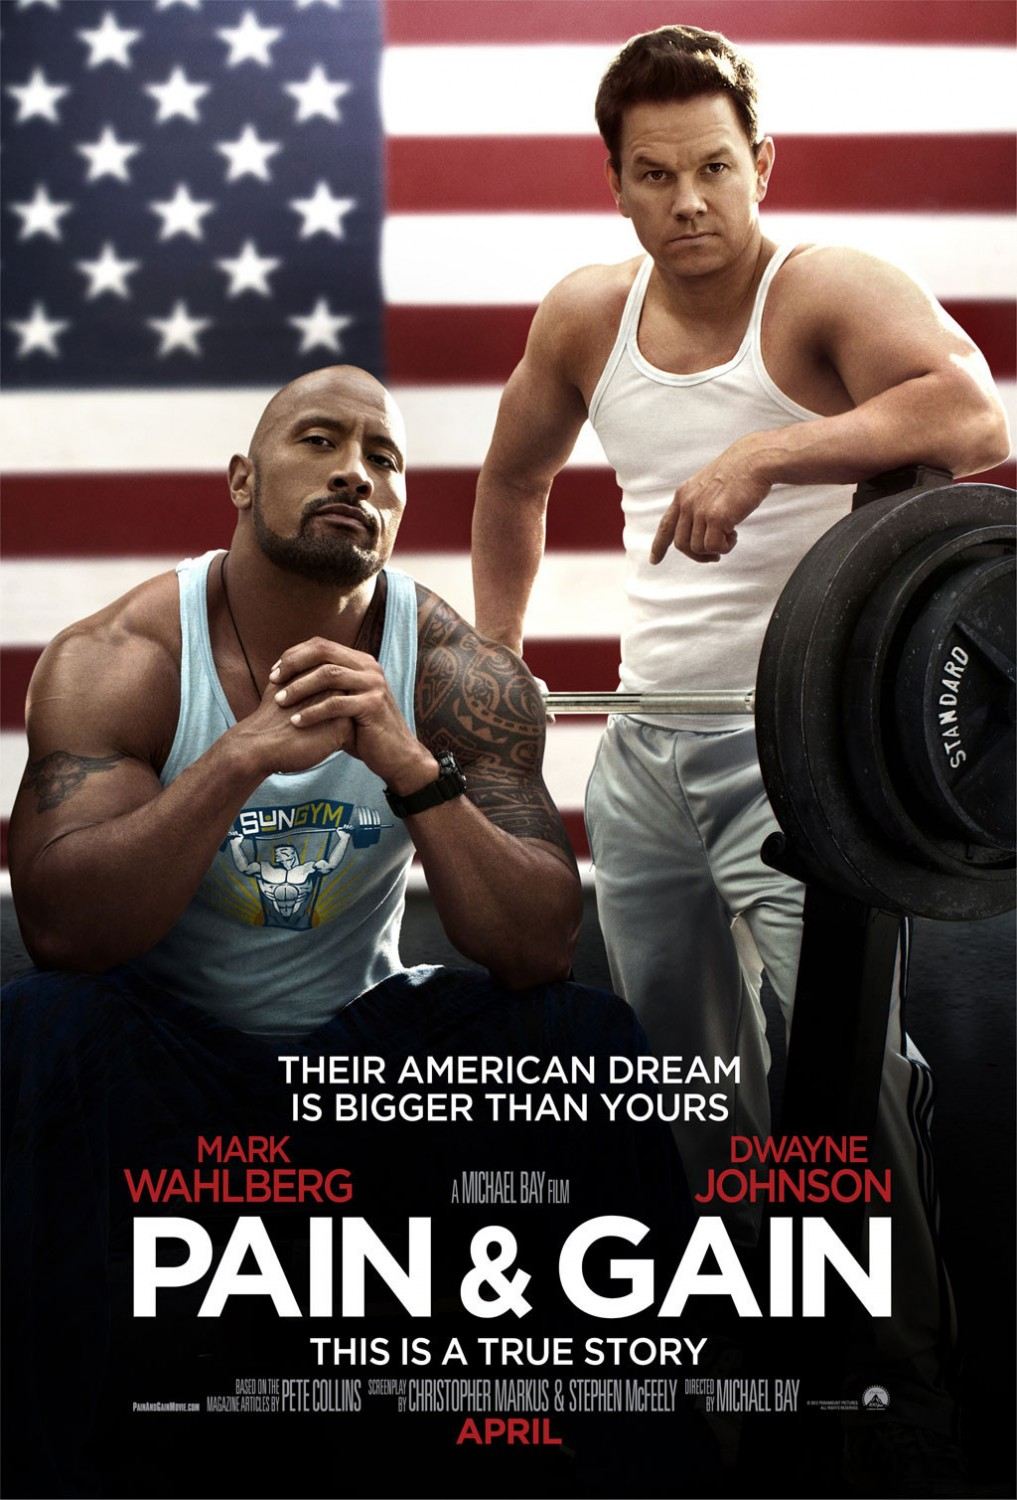 Says PAIN & GAIN Is Michael Bay's Best Movie (Whatever That Means